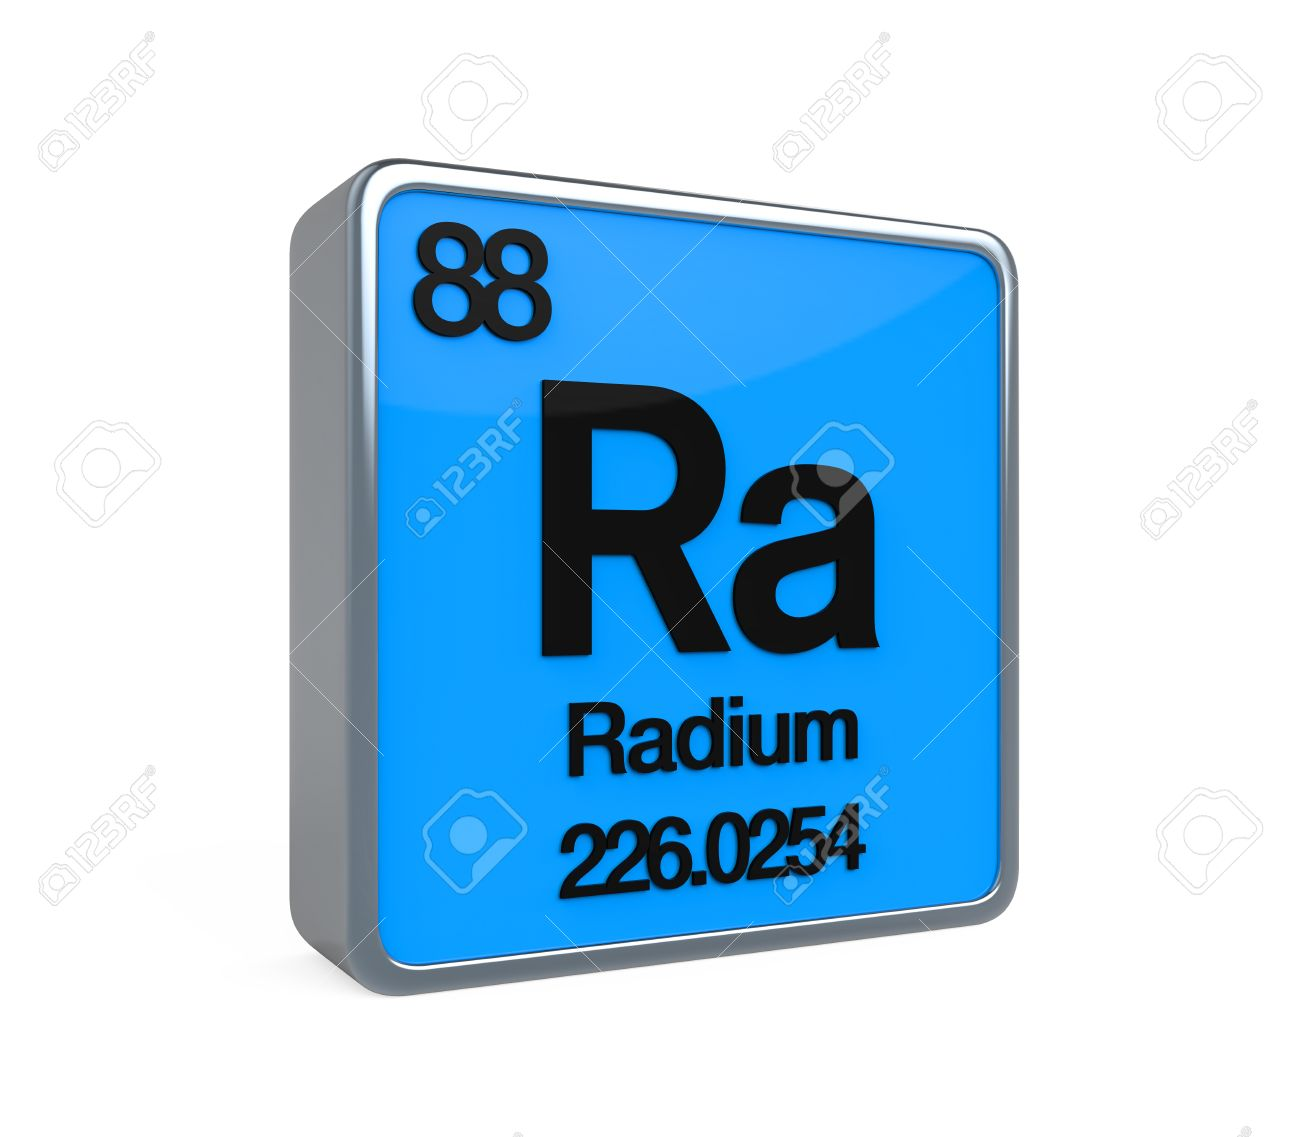 Radium element periodic table stock photo picture and royalty radium element periodic table stock photo 32997652 gamestrikefo Images